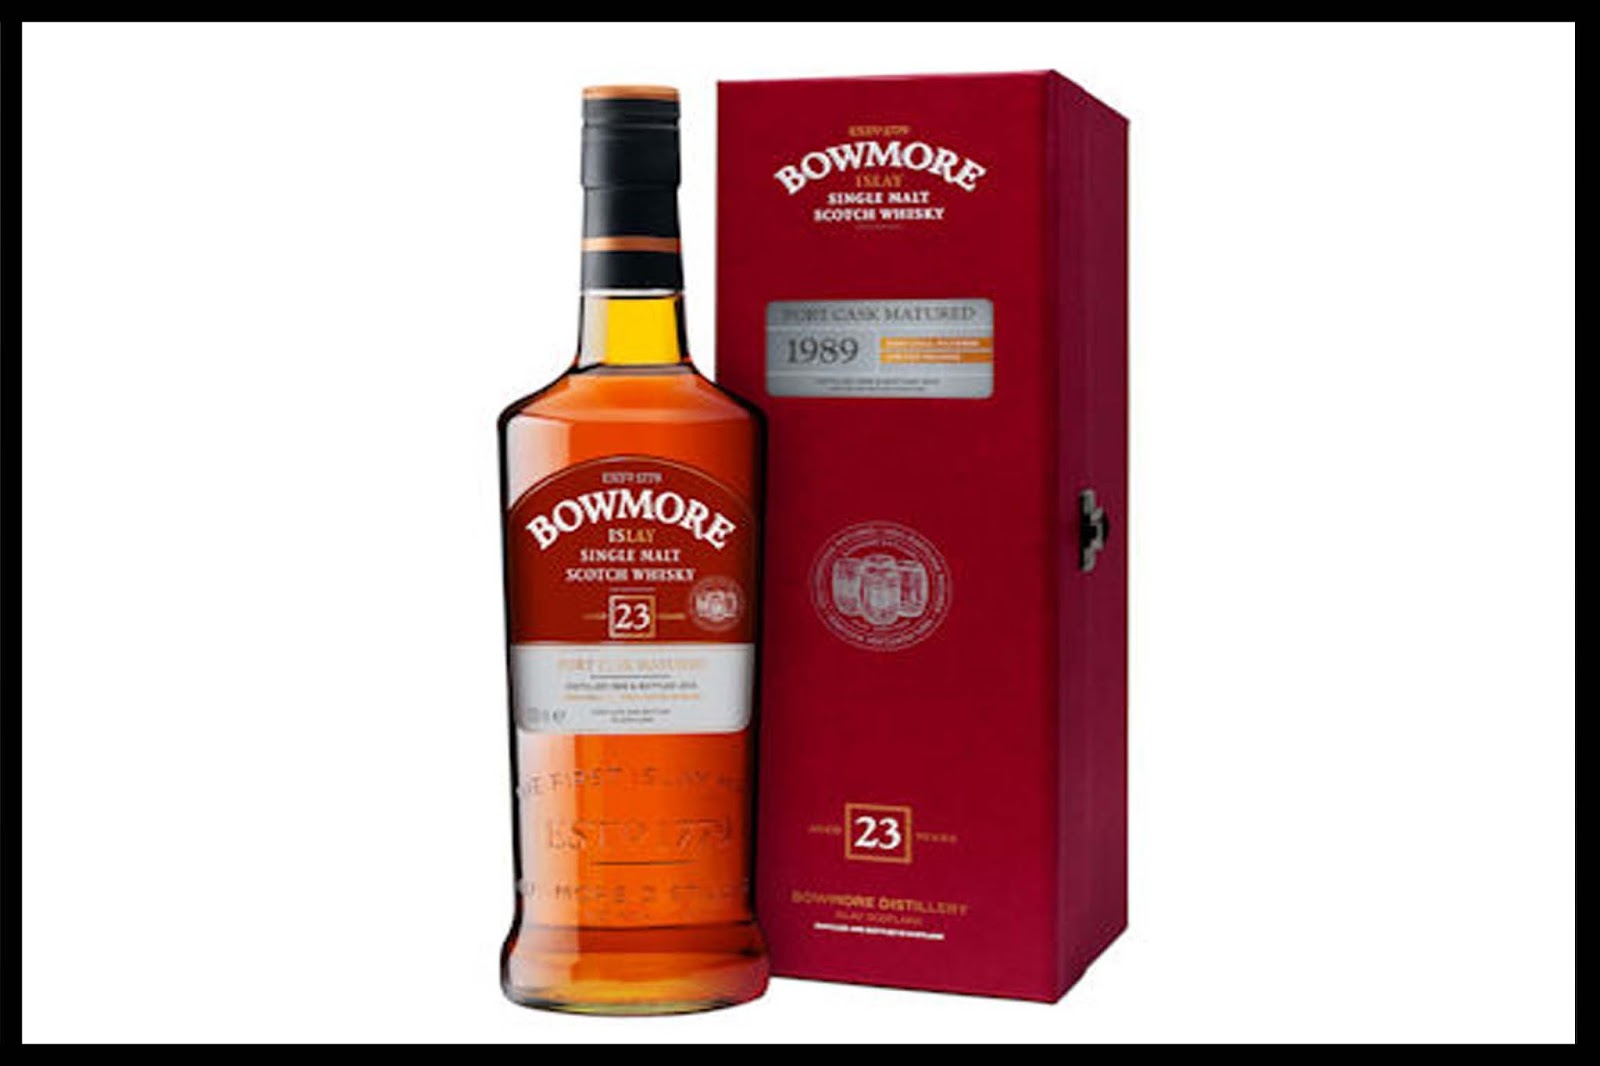 Bowmore Whisky